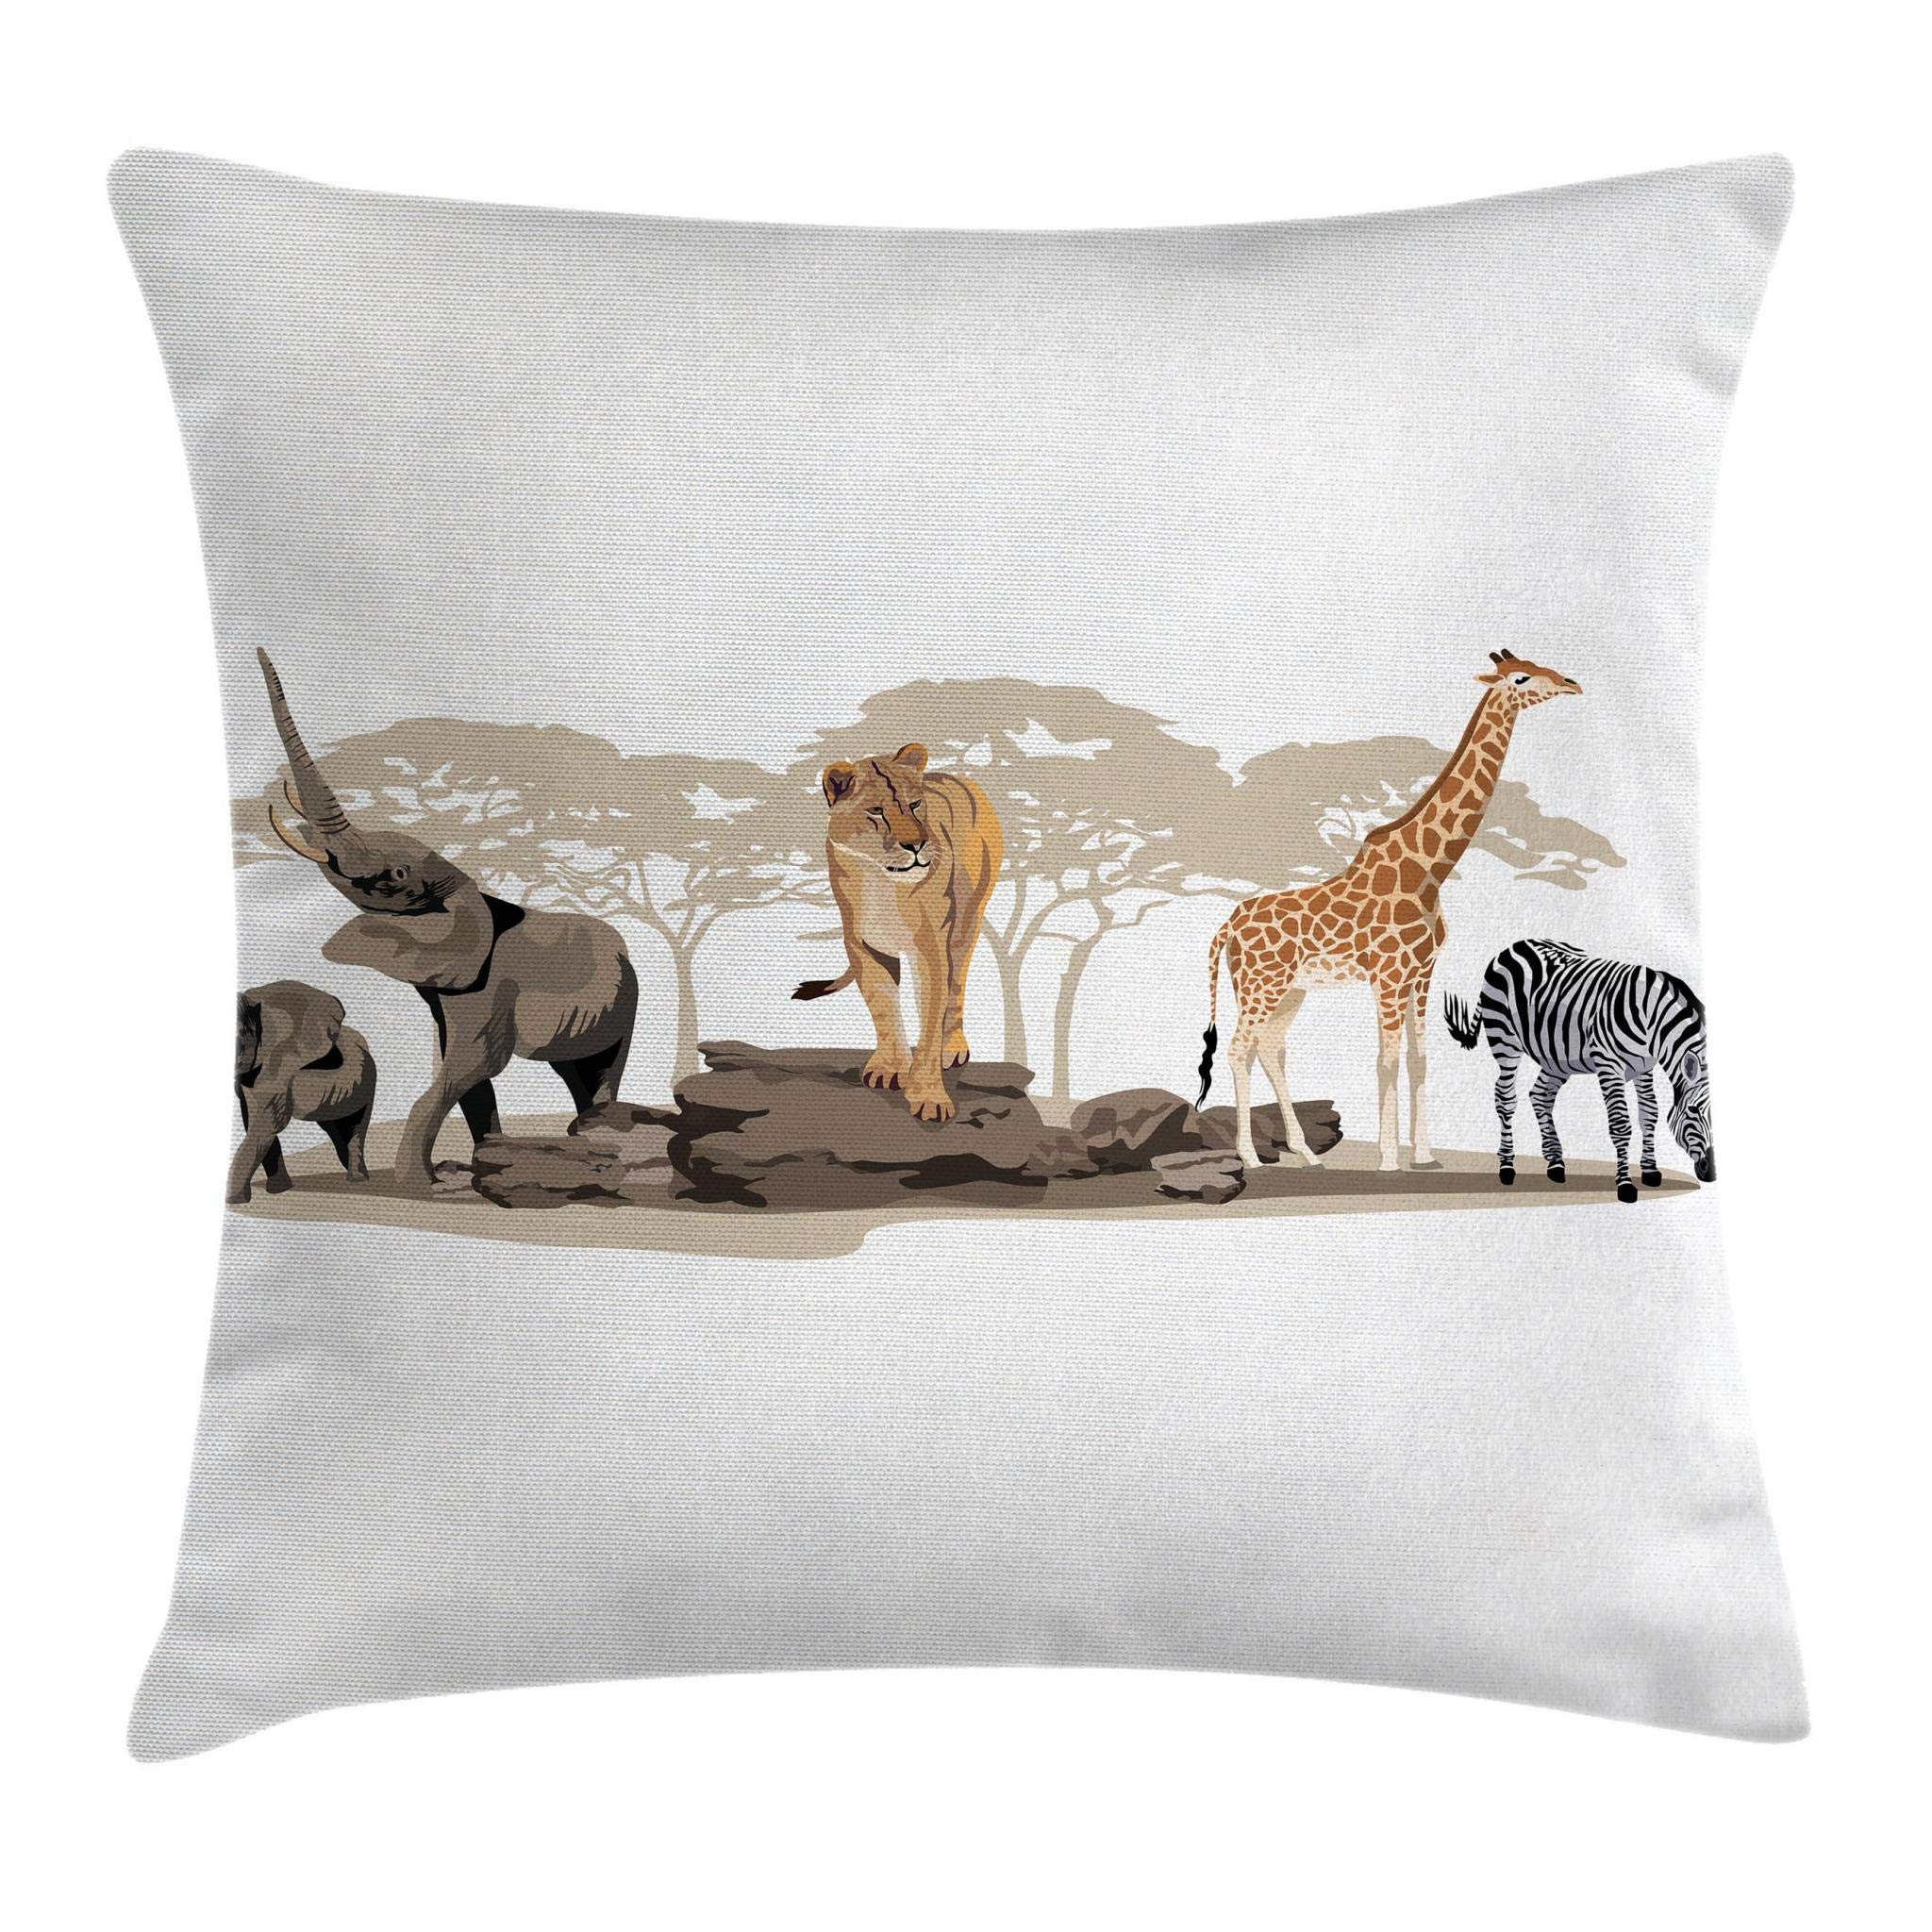 Ambesonne Safari Throw Pillow Cushion Cover, Illustration of Wild Savannahs African Animals Exotic Giraffe Lion Elephant Zebra, Decorative Square Accent Pillow Case, 18 X 18 Inches, Multicolor